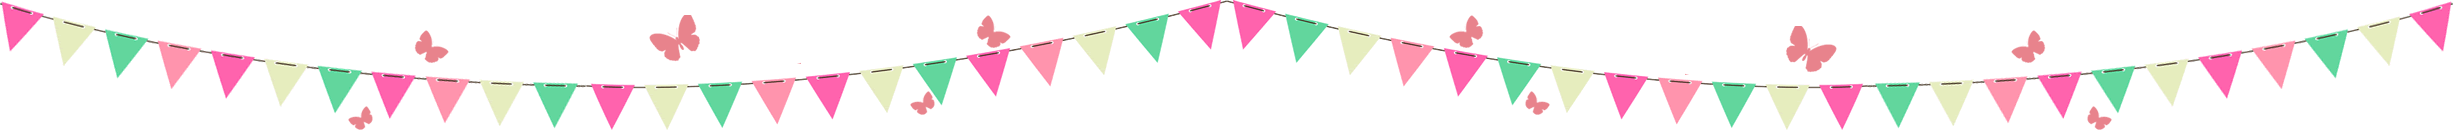 Heidi Swain Cherry Tree Cafe bunting